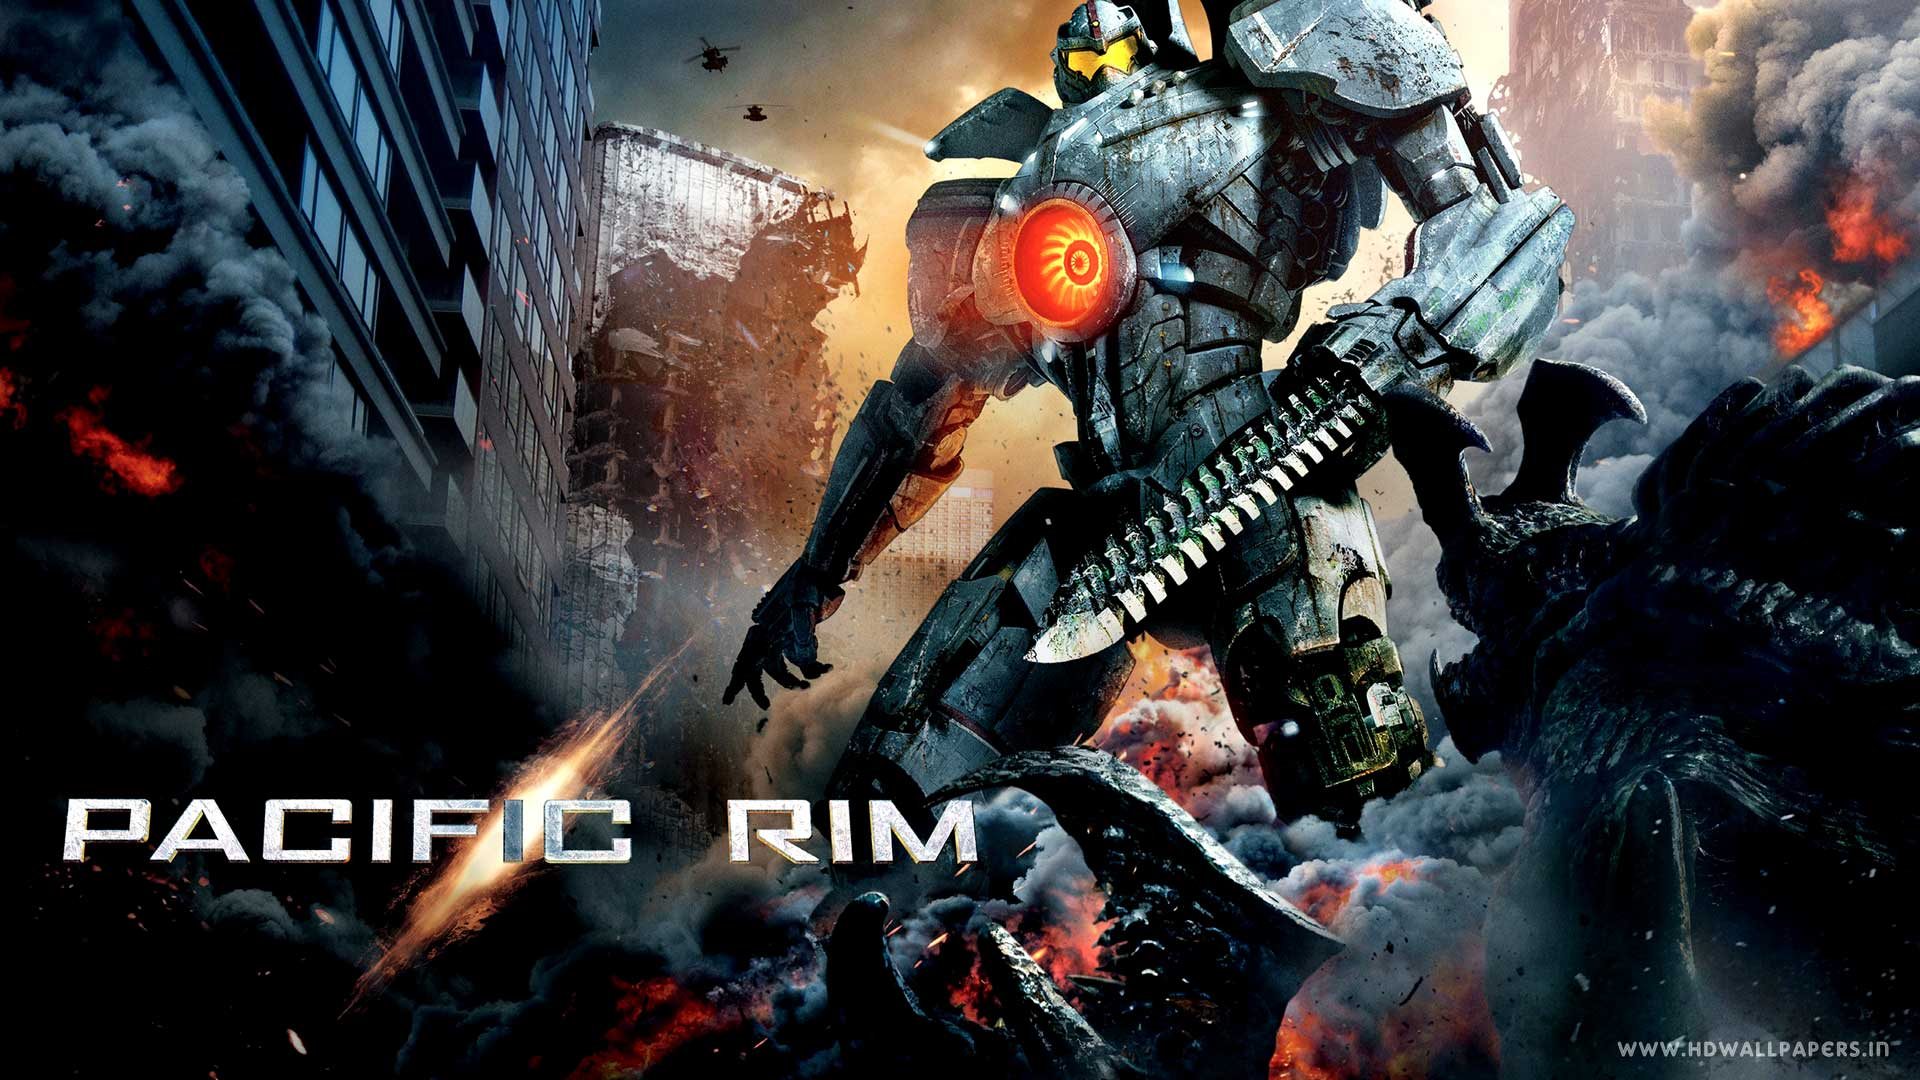 Pacific Rim Logo Wallpaper